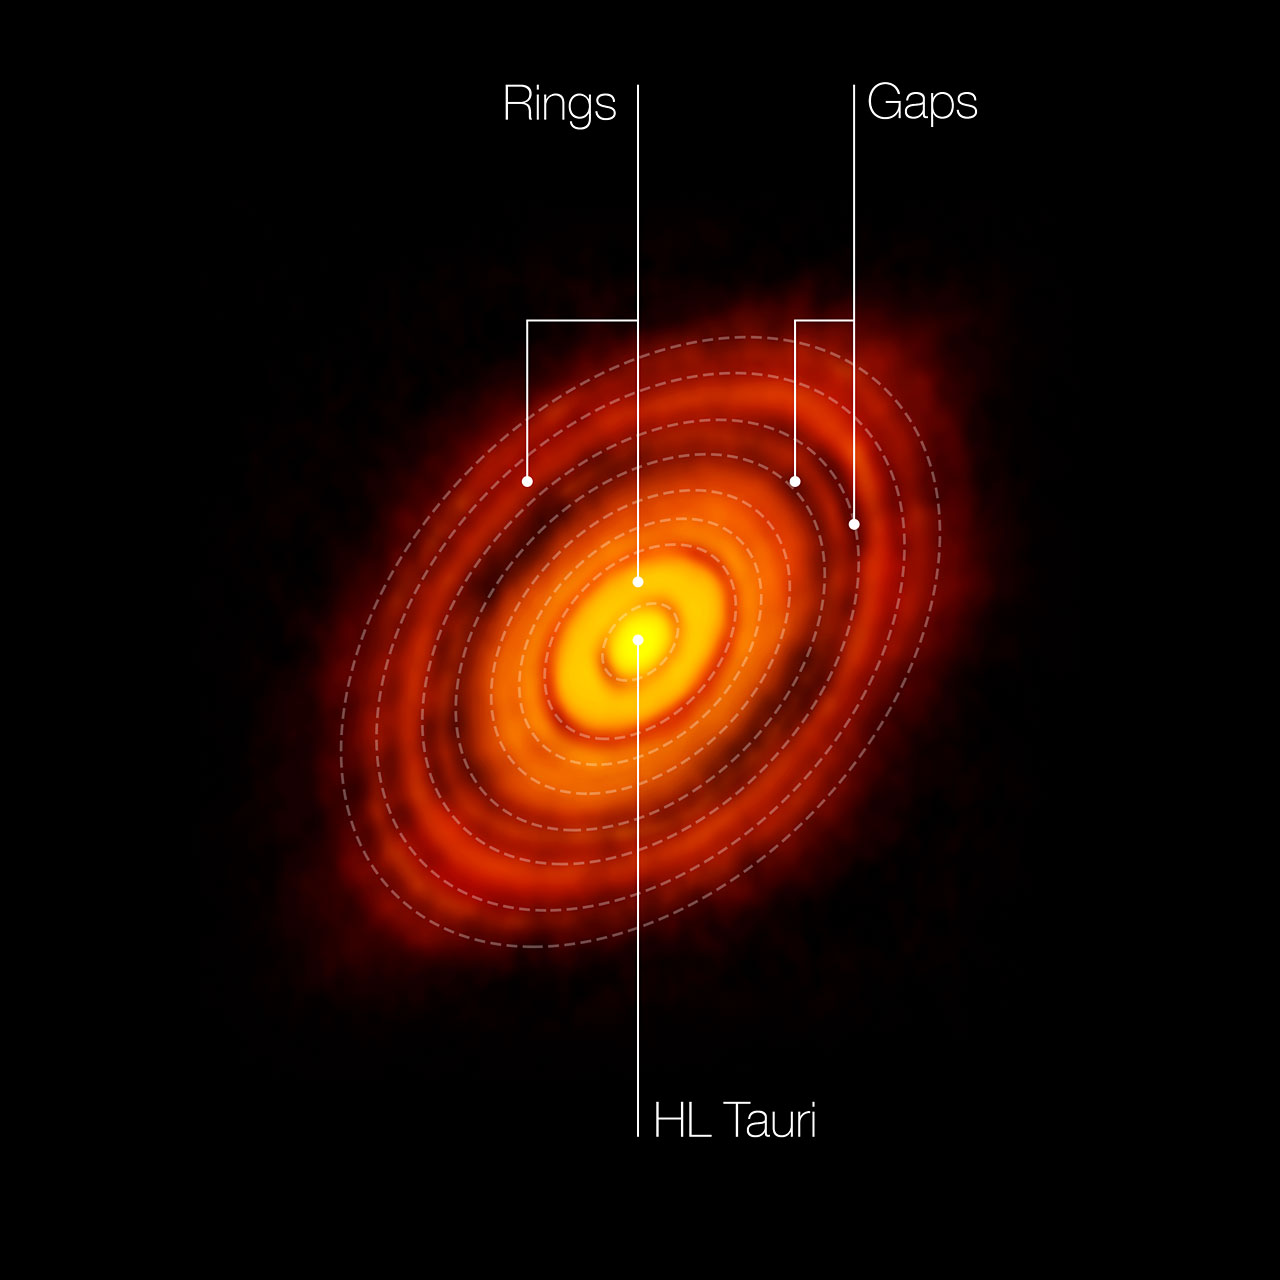 This is the sharpest image ever taken by ALMA — sharper than is routinely achieved in visible light with the NASA/ESA Hubble Space Telescope. It shows the protoplanetary disc surrounding the young star HL Tauri. The observations reveal substructures within the disc that have never been seen before and even show the possible positions of planets forming in the dark patches within the system.In this picture the features seen in the HL Tauri system are labelled. Credit: ALMA (ESO/NAOJ/NRAO)